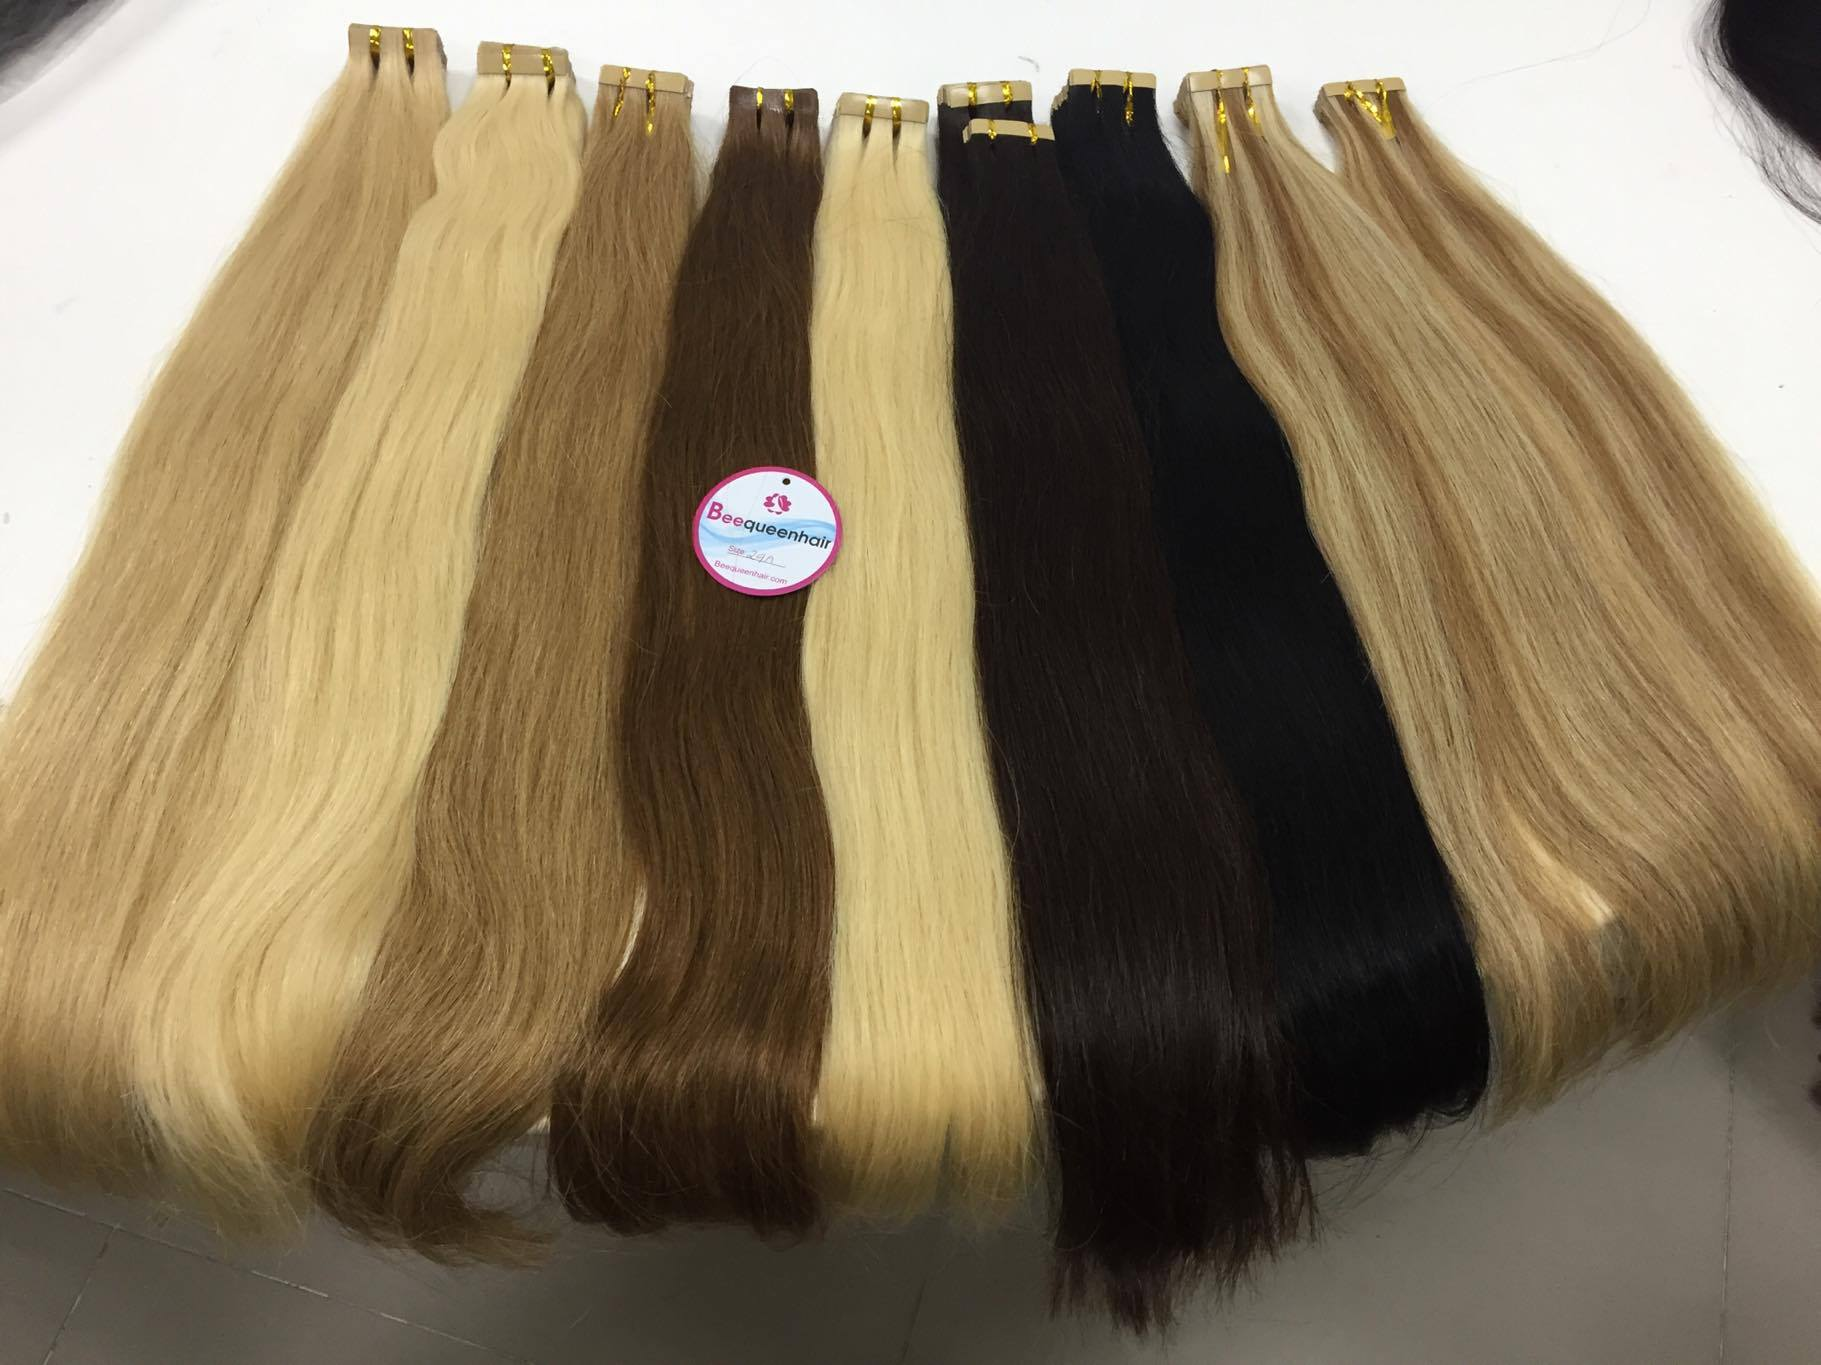 Tape extensions care